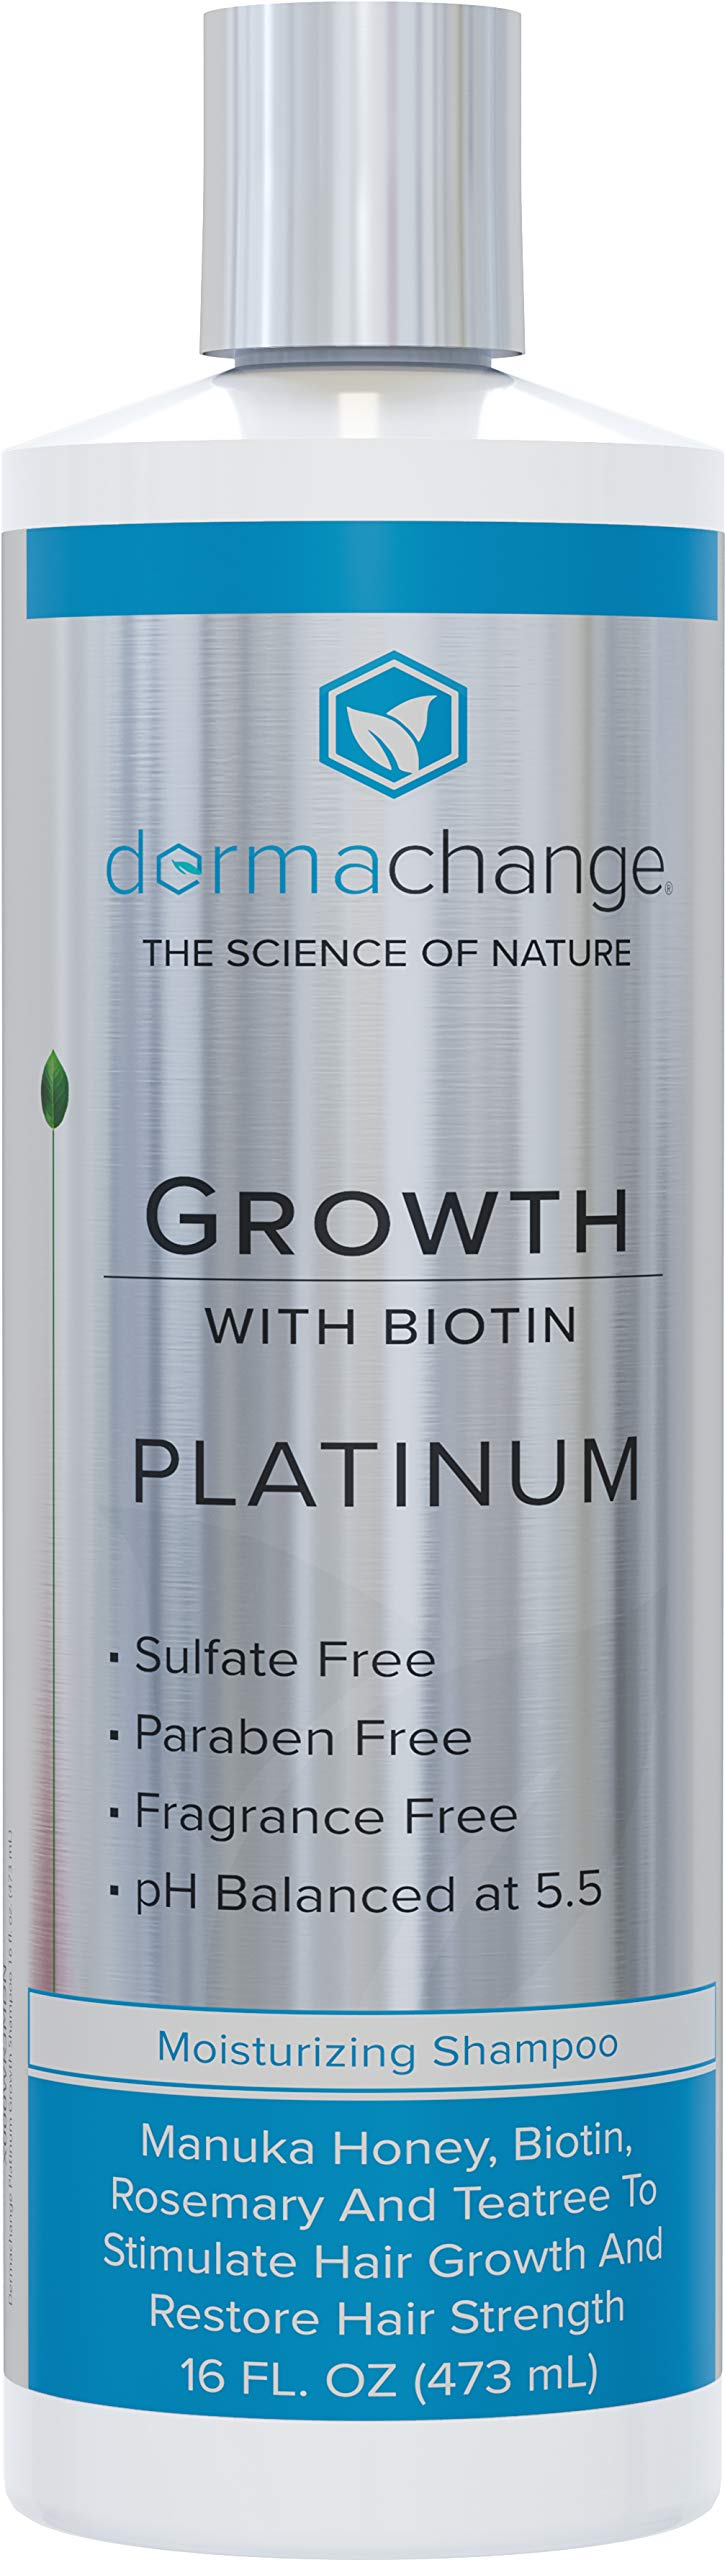 Platinum Hair Growth Moisturizing Shampoo - With Argan Oil, Biotin & Tea Tree Extract - Supports Hair Regrowth - Hair Loss Treatments (16 oz) - Made in USA by DermaChange